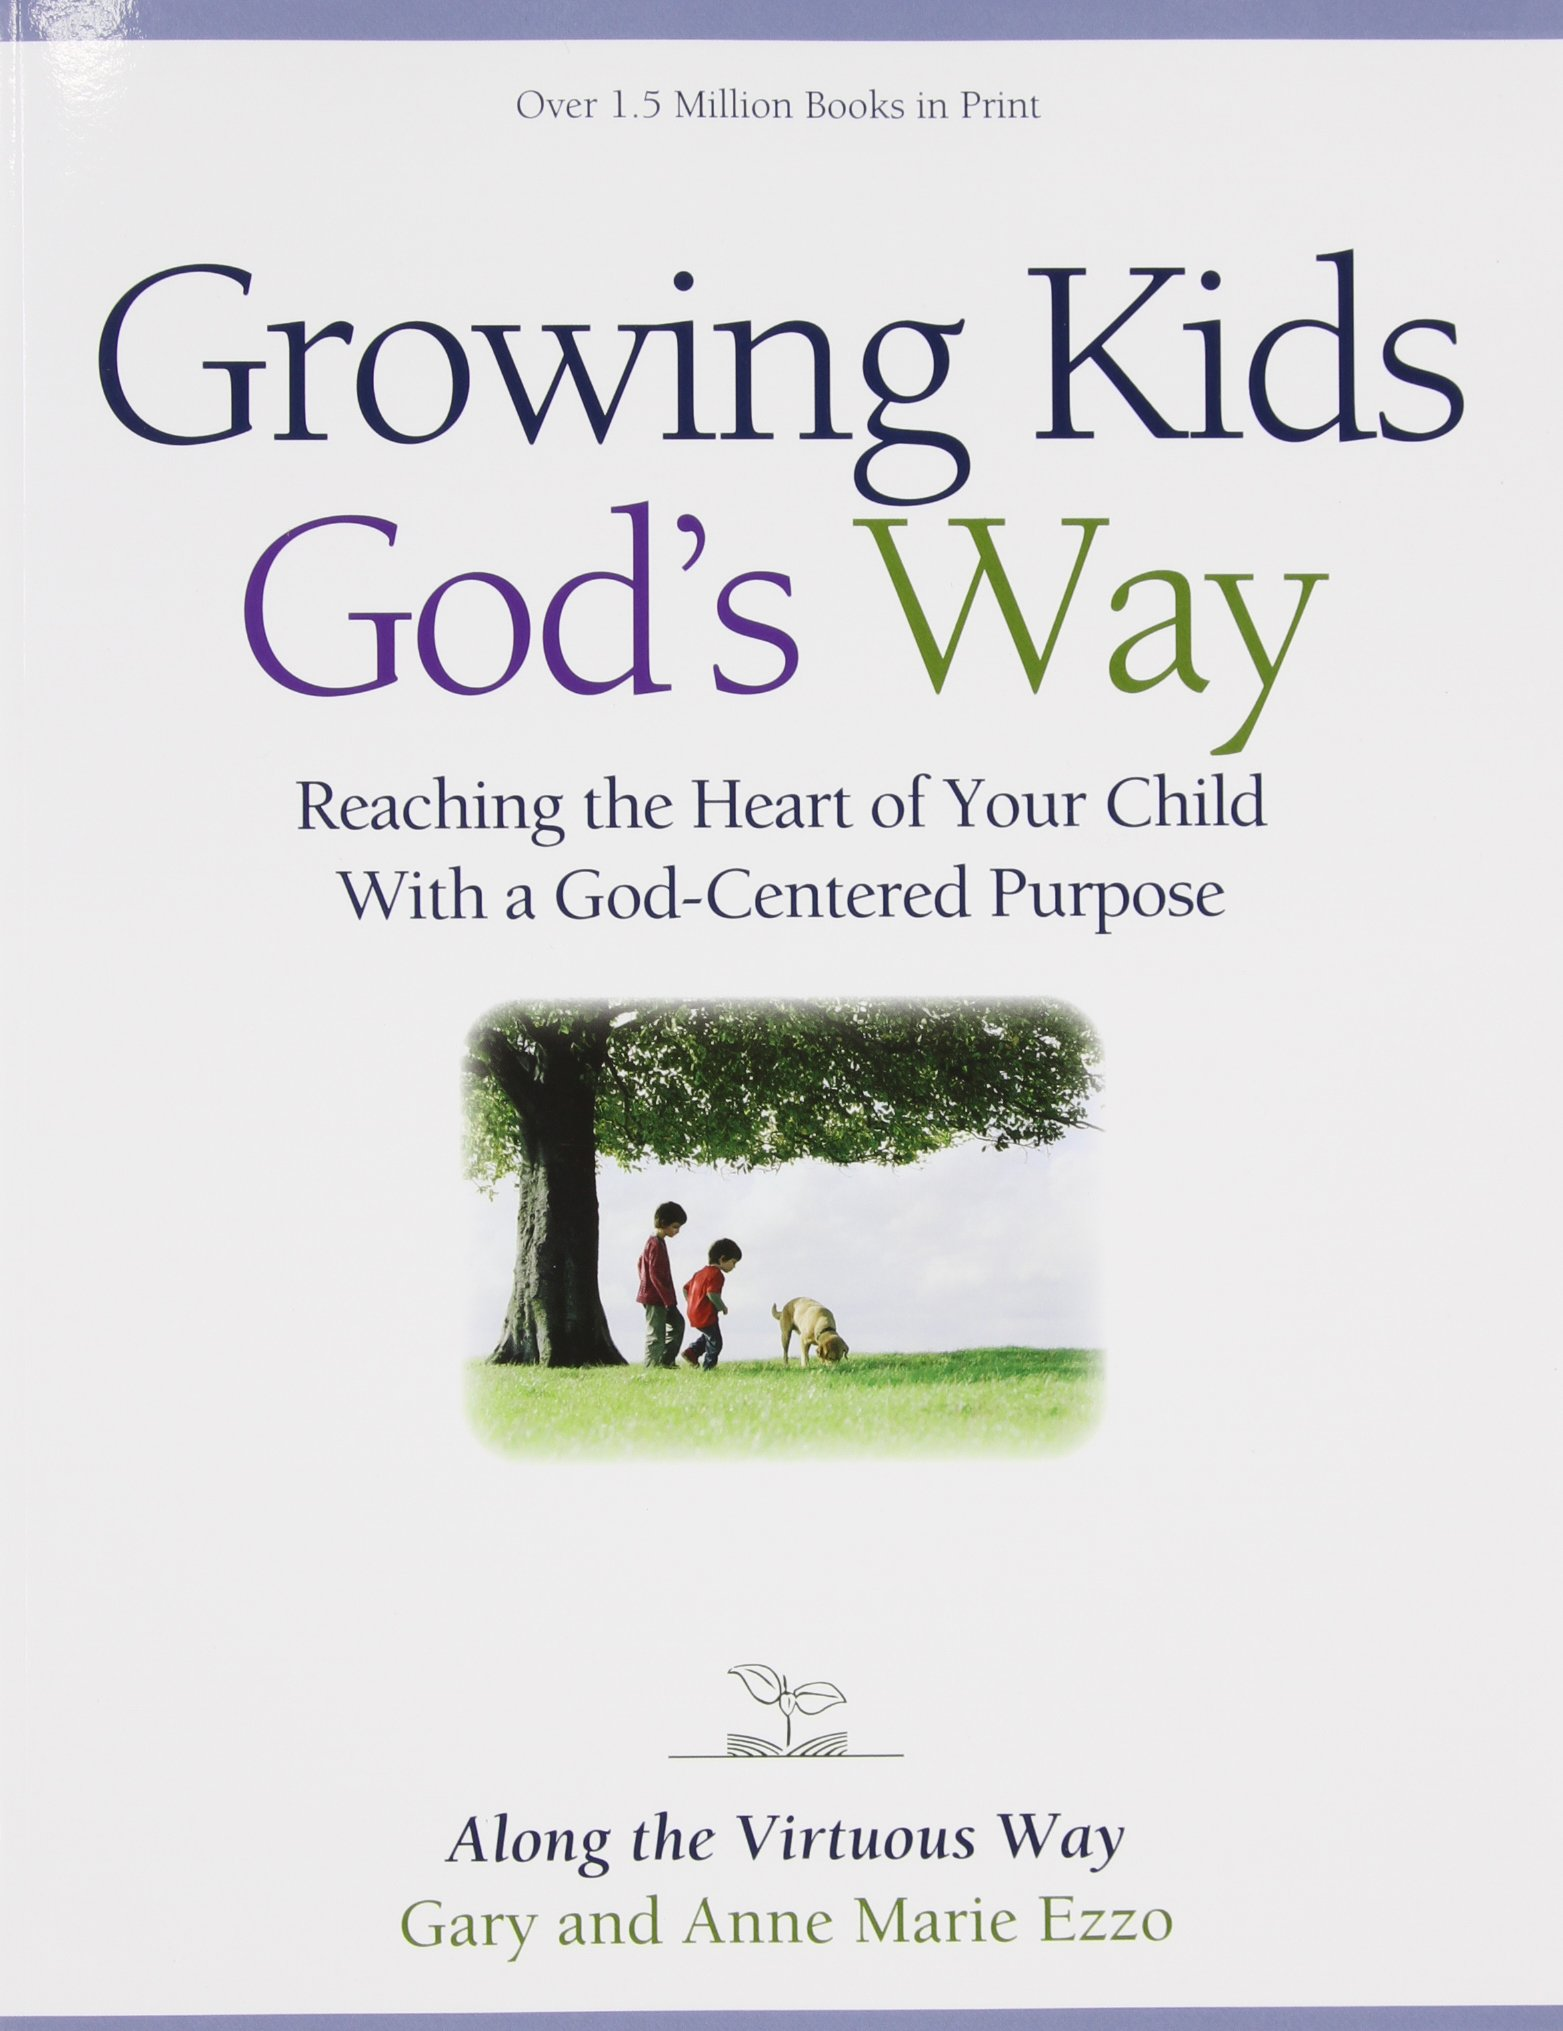 Growing Kids Gods Way Reaching the Heart of Your Child With a